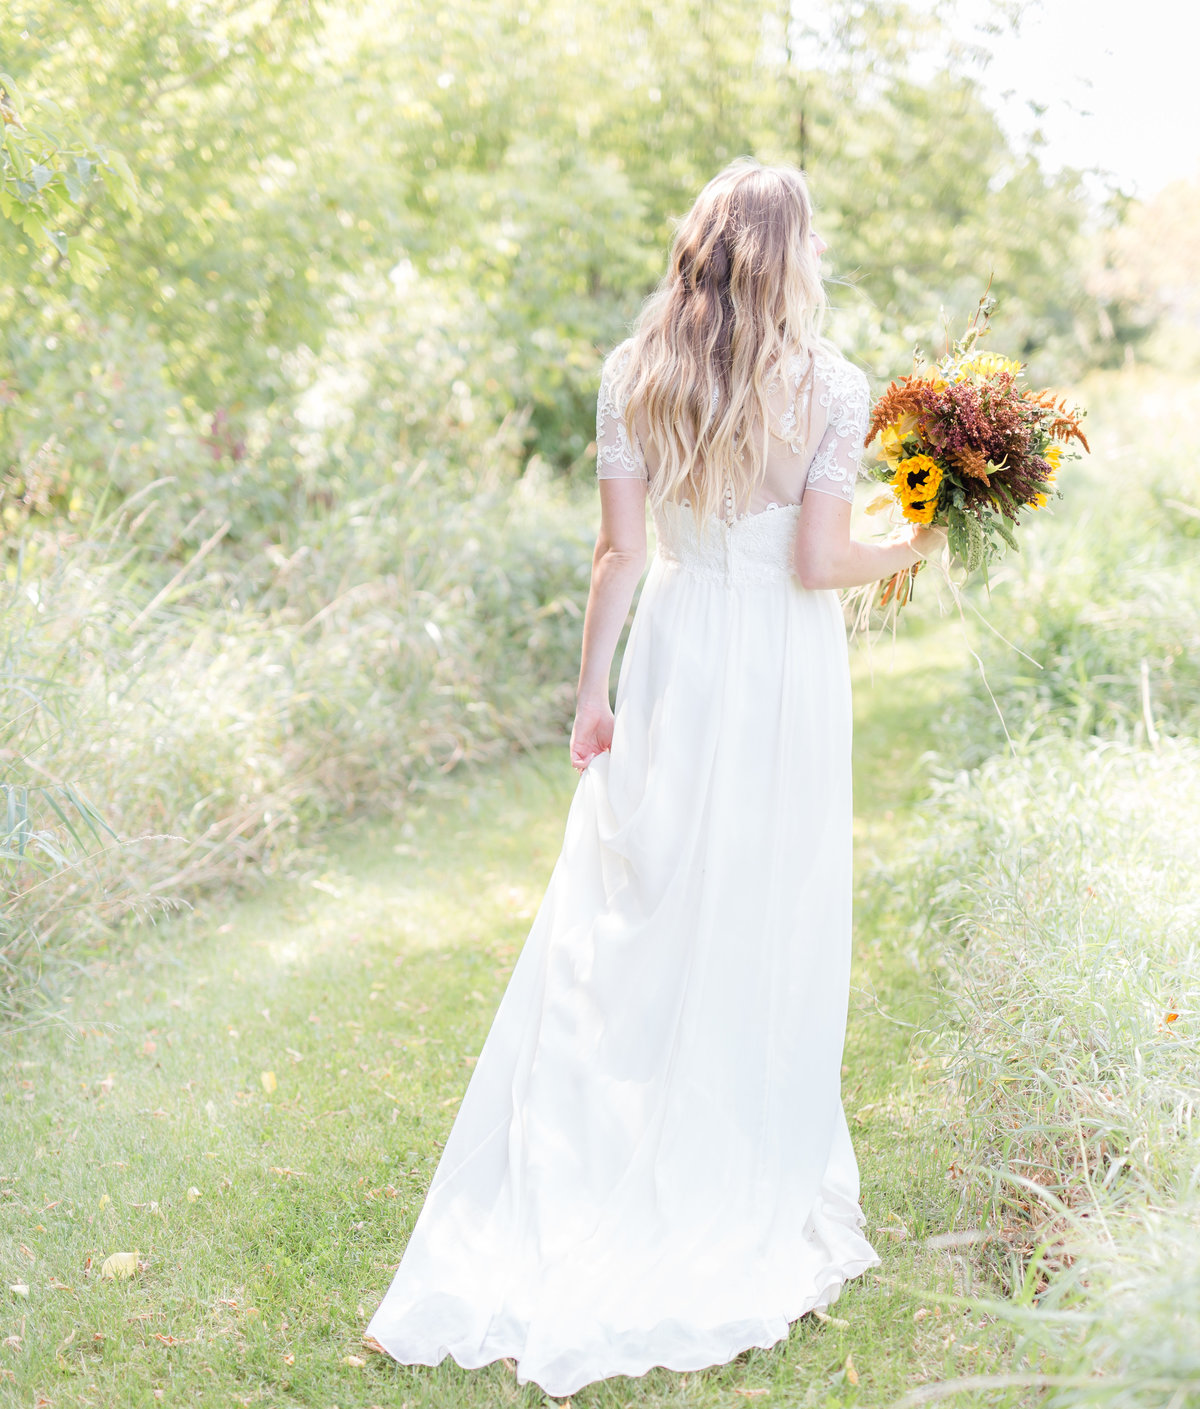 Kailey - Styled Shoot - New Edits-105